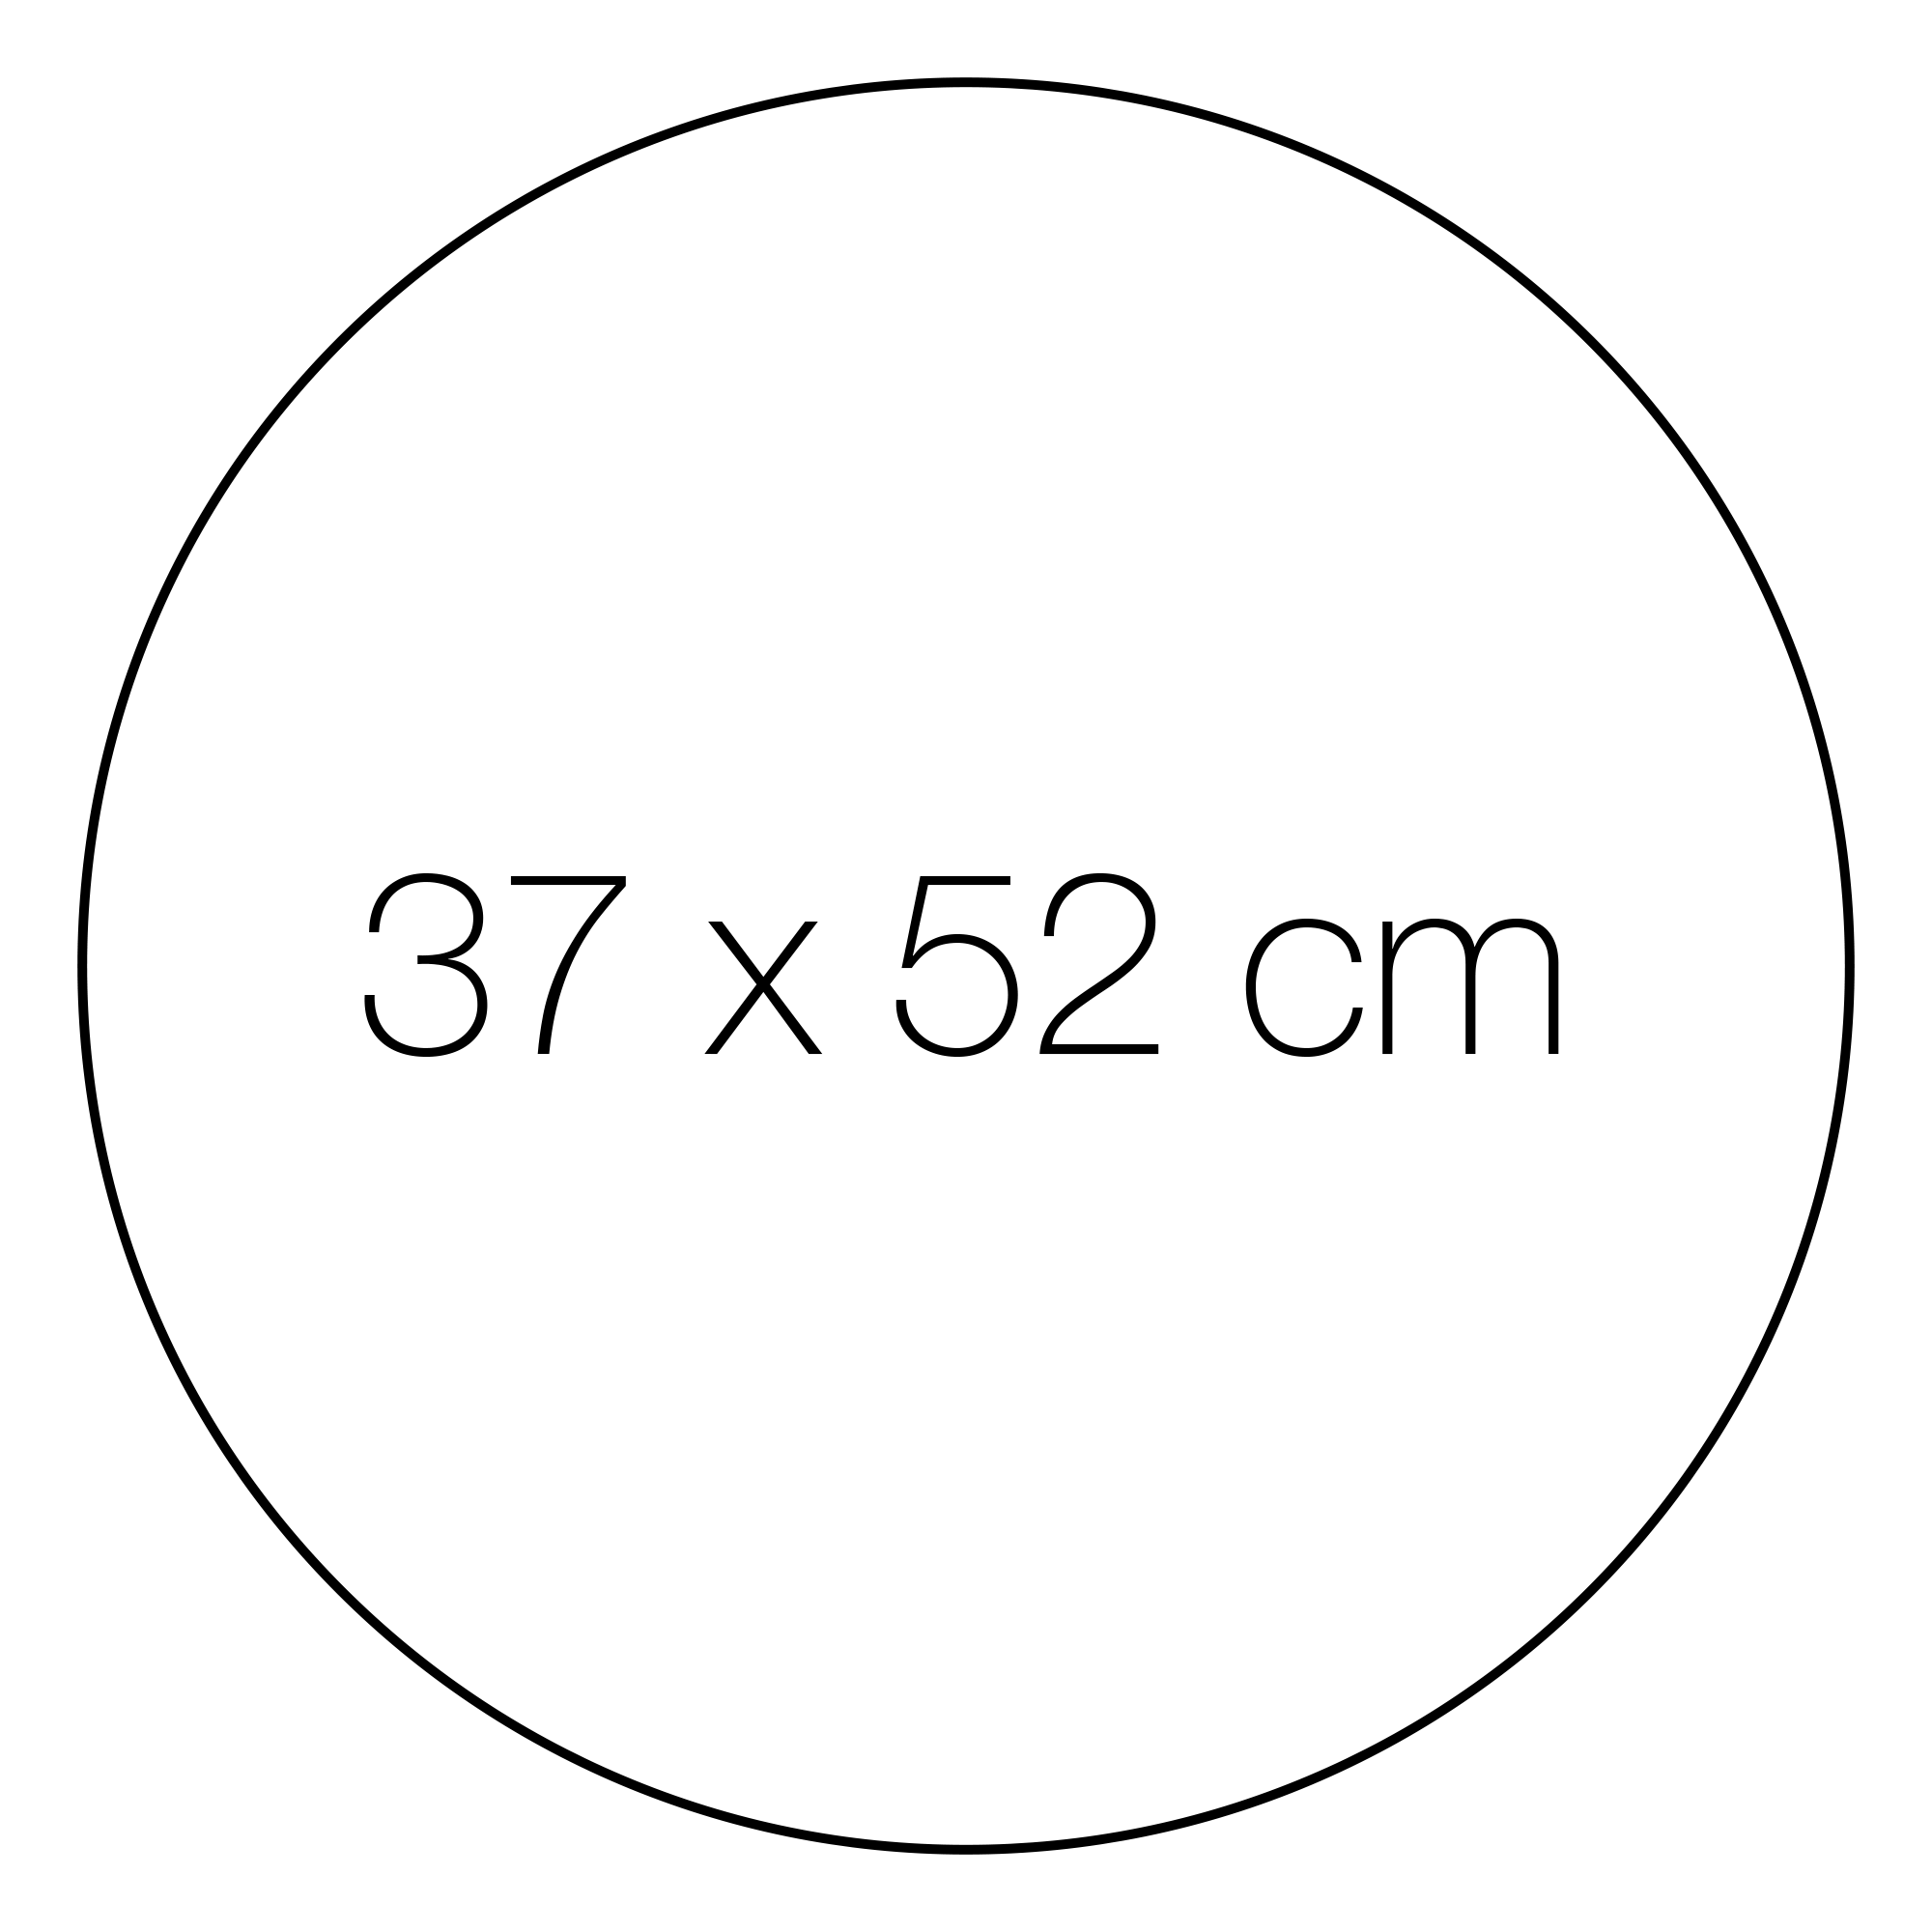 attribute-size-37-x-52-centimeters